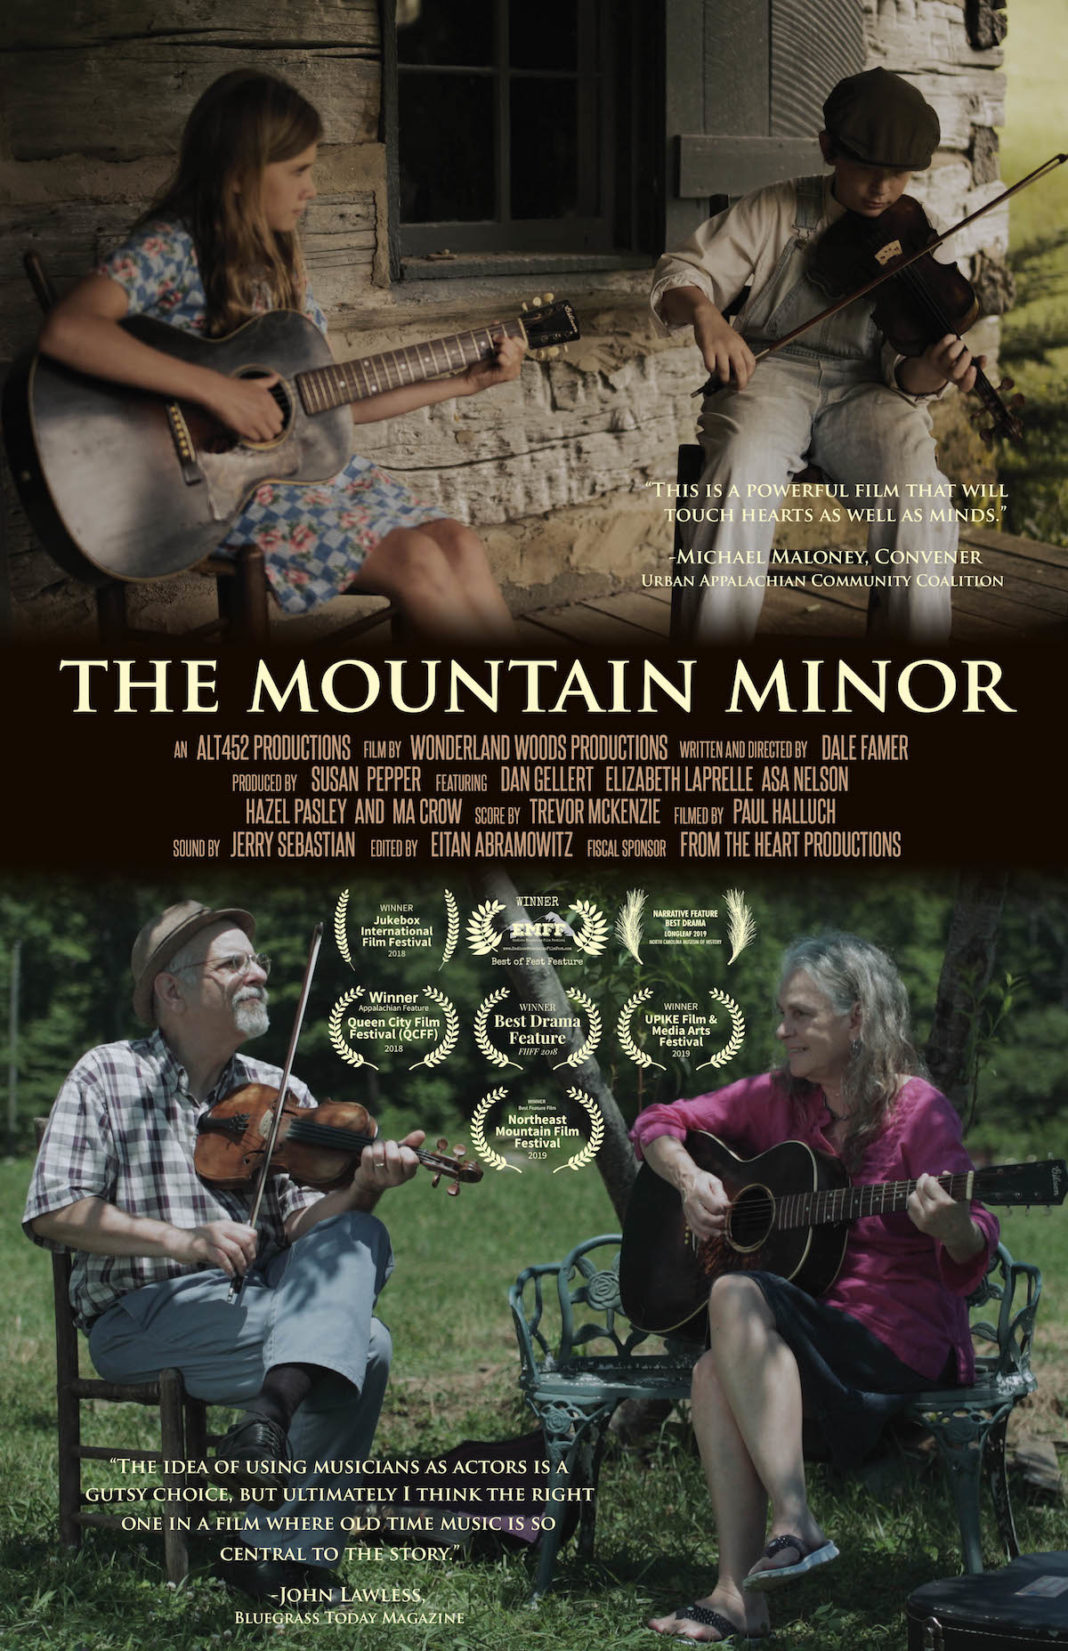 The Mountain Minor film poster